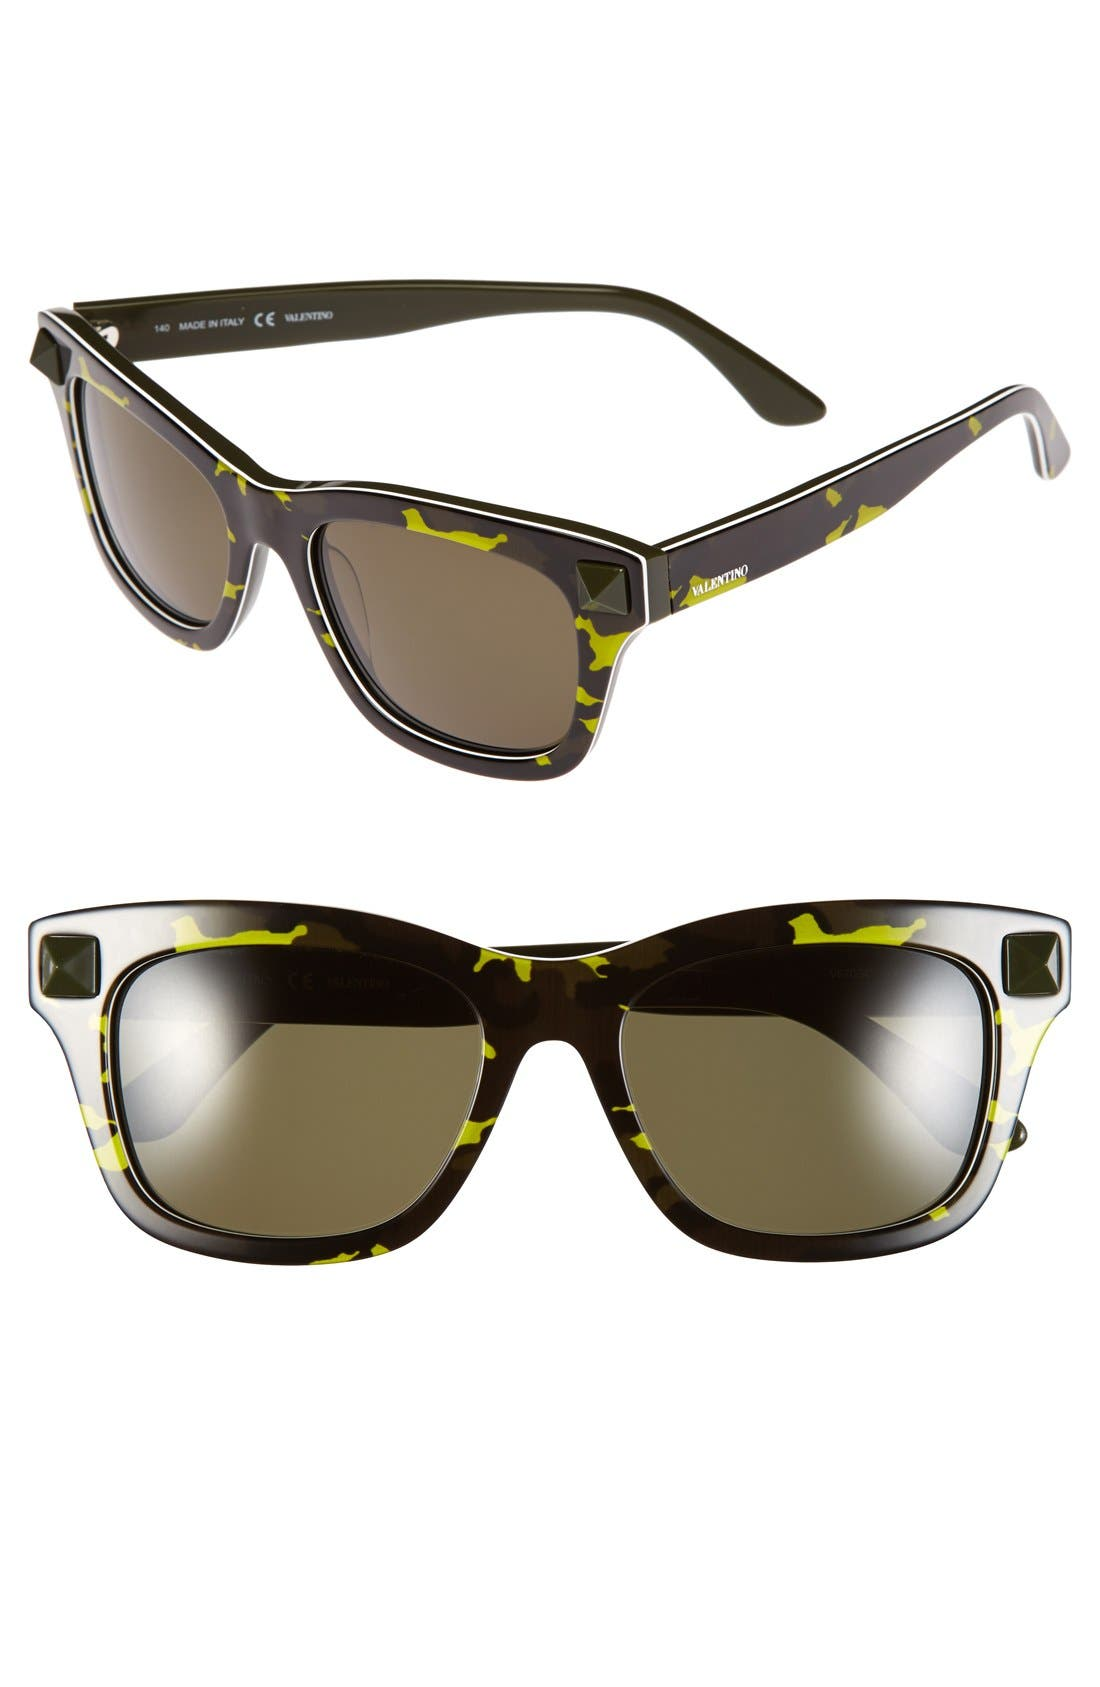 Main Image - Valentino 'Rockstud' 53mm Retro Sunglasses